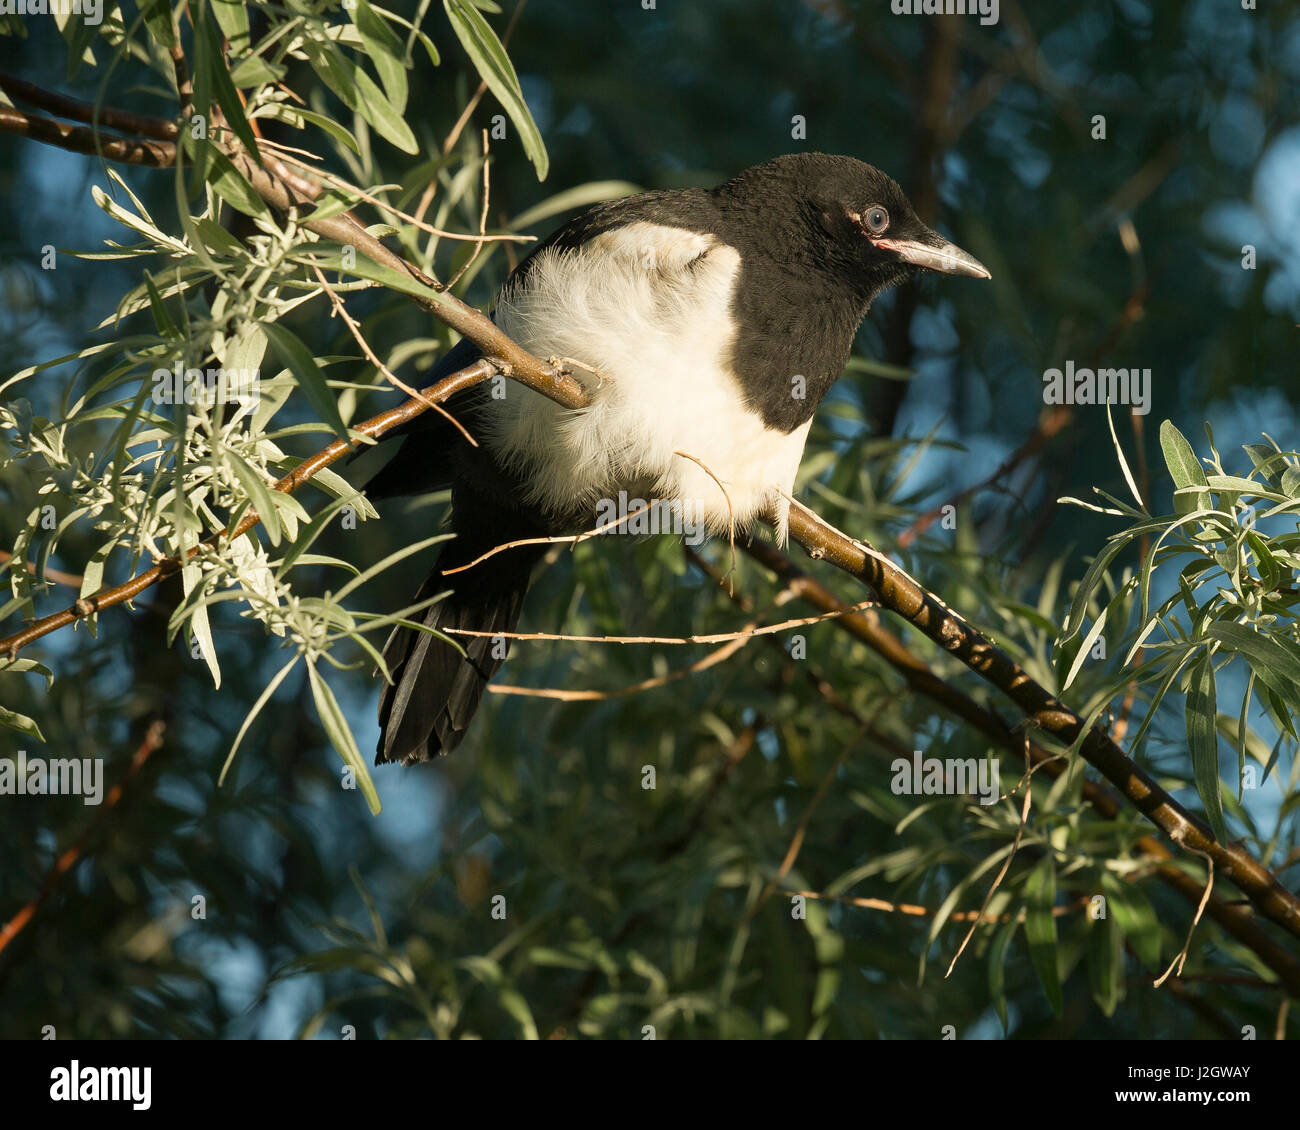 Black-billed Magpie fledgling, Pica hudsonia, New Mexico, wild - Stock Image